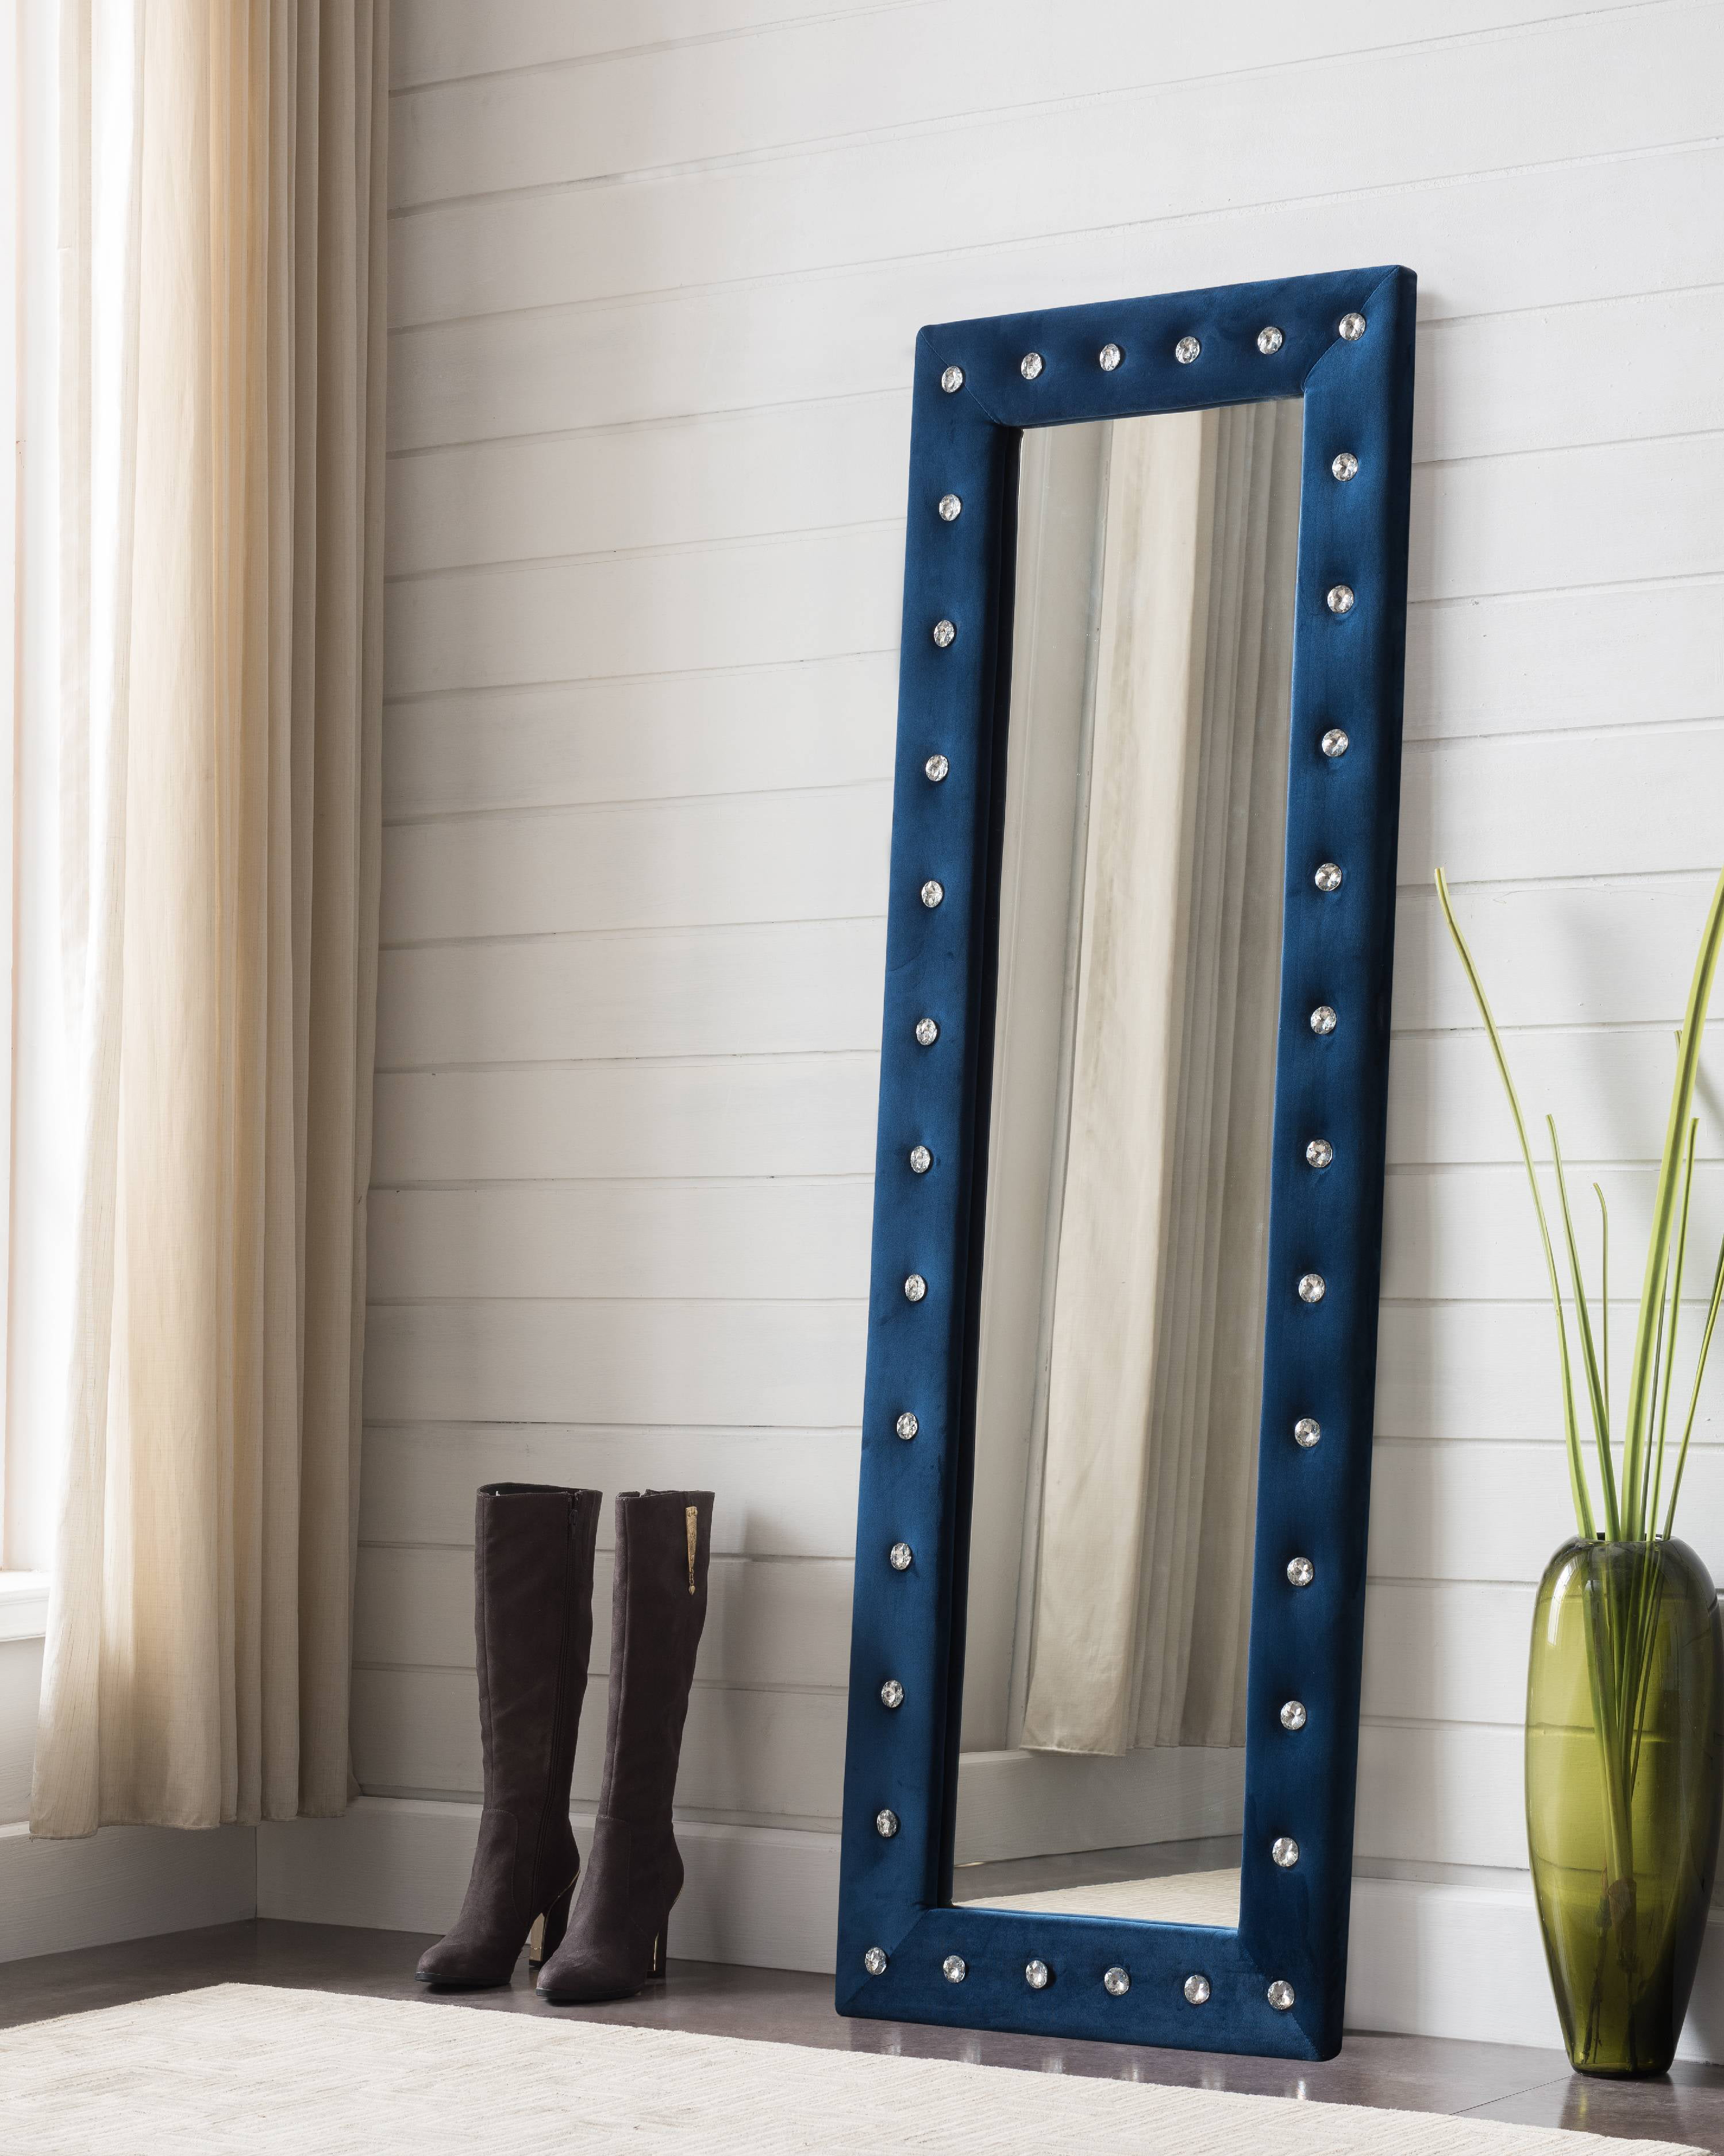 Jane White Upholstered Tufted Faux Leather Transitional Floor Standing Mirror (Crystal... by Pilaster Designs